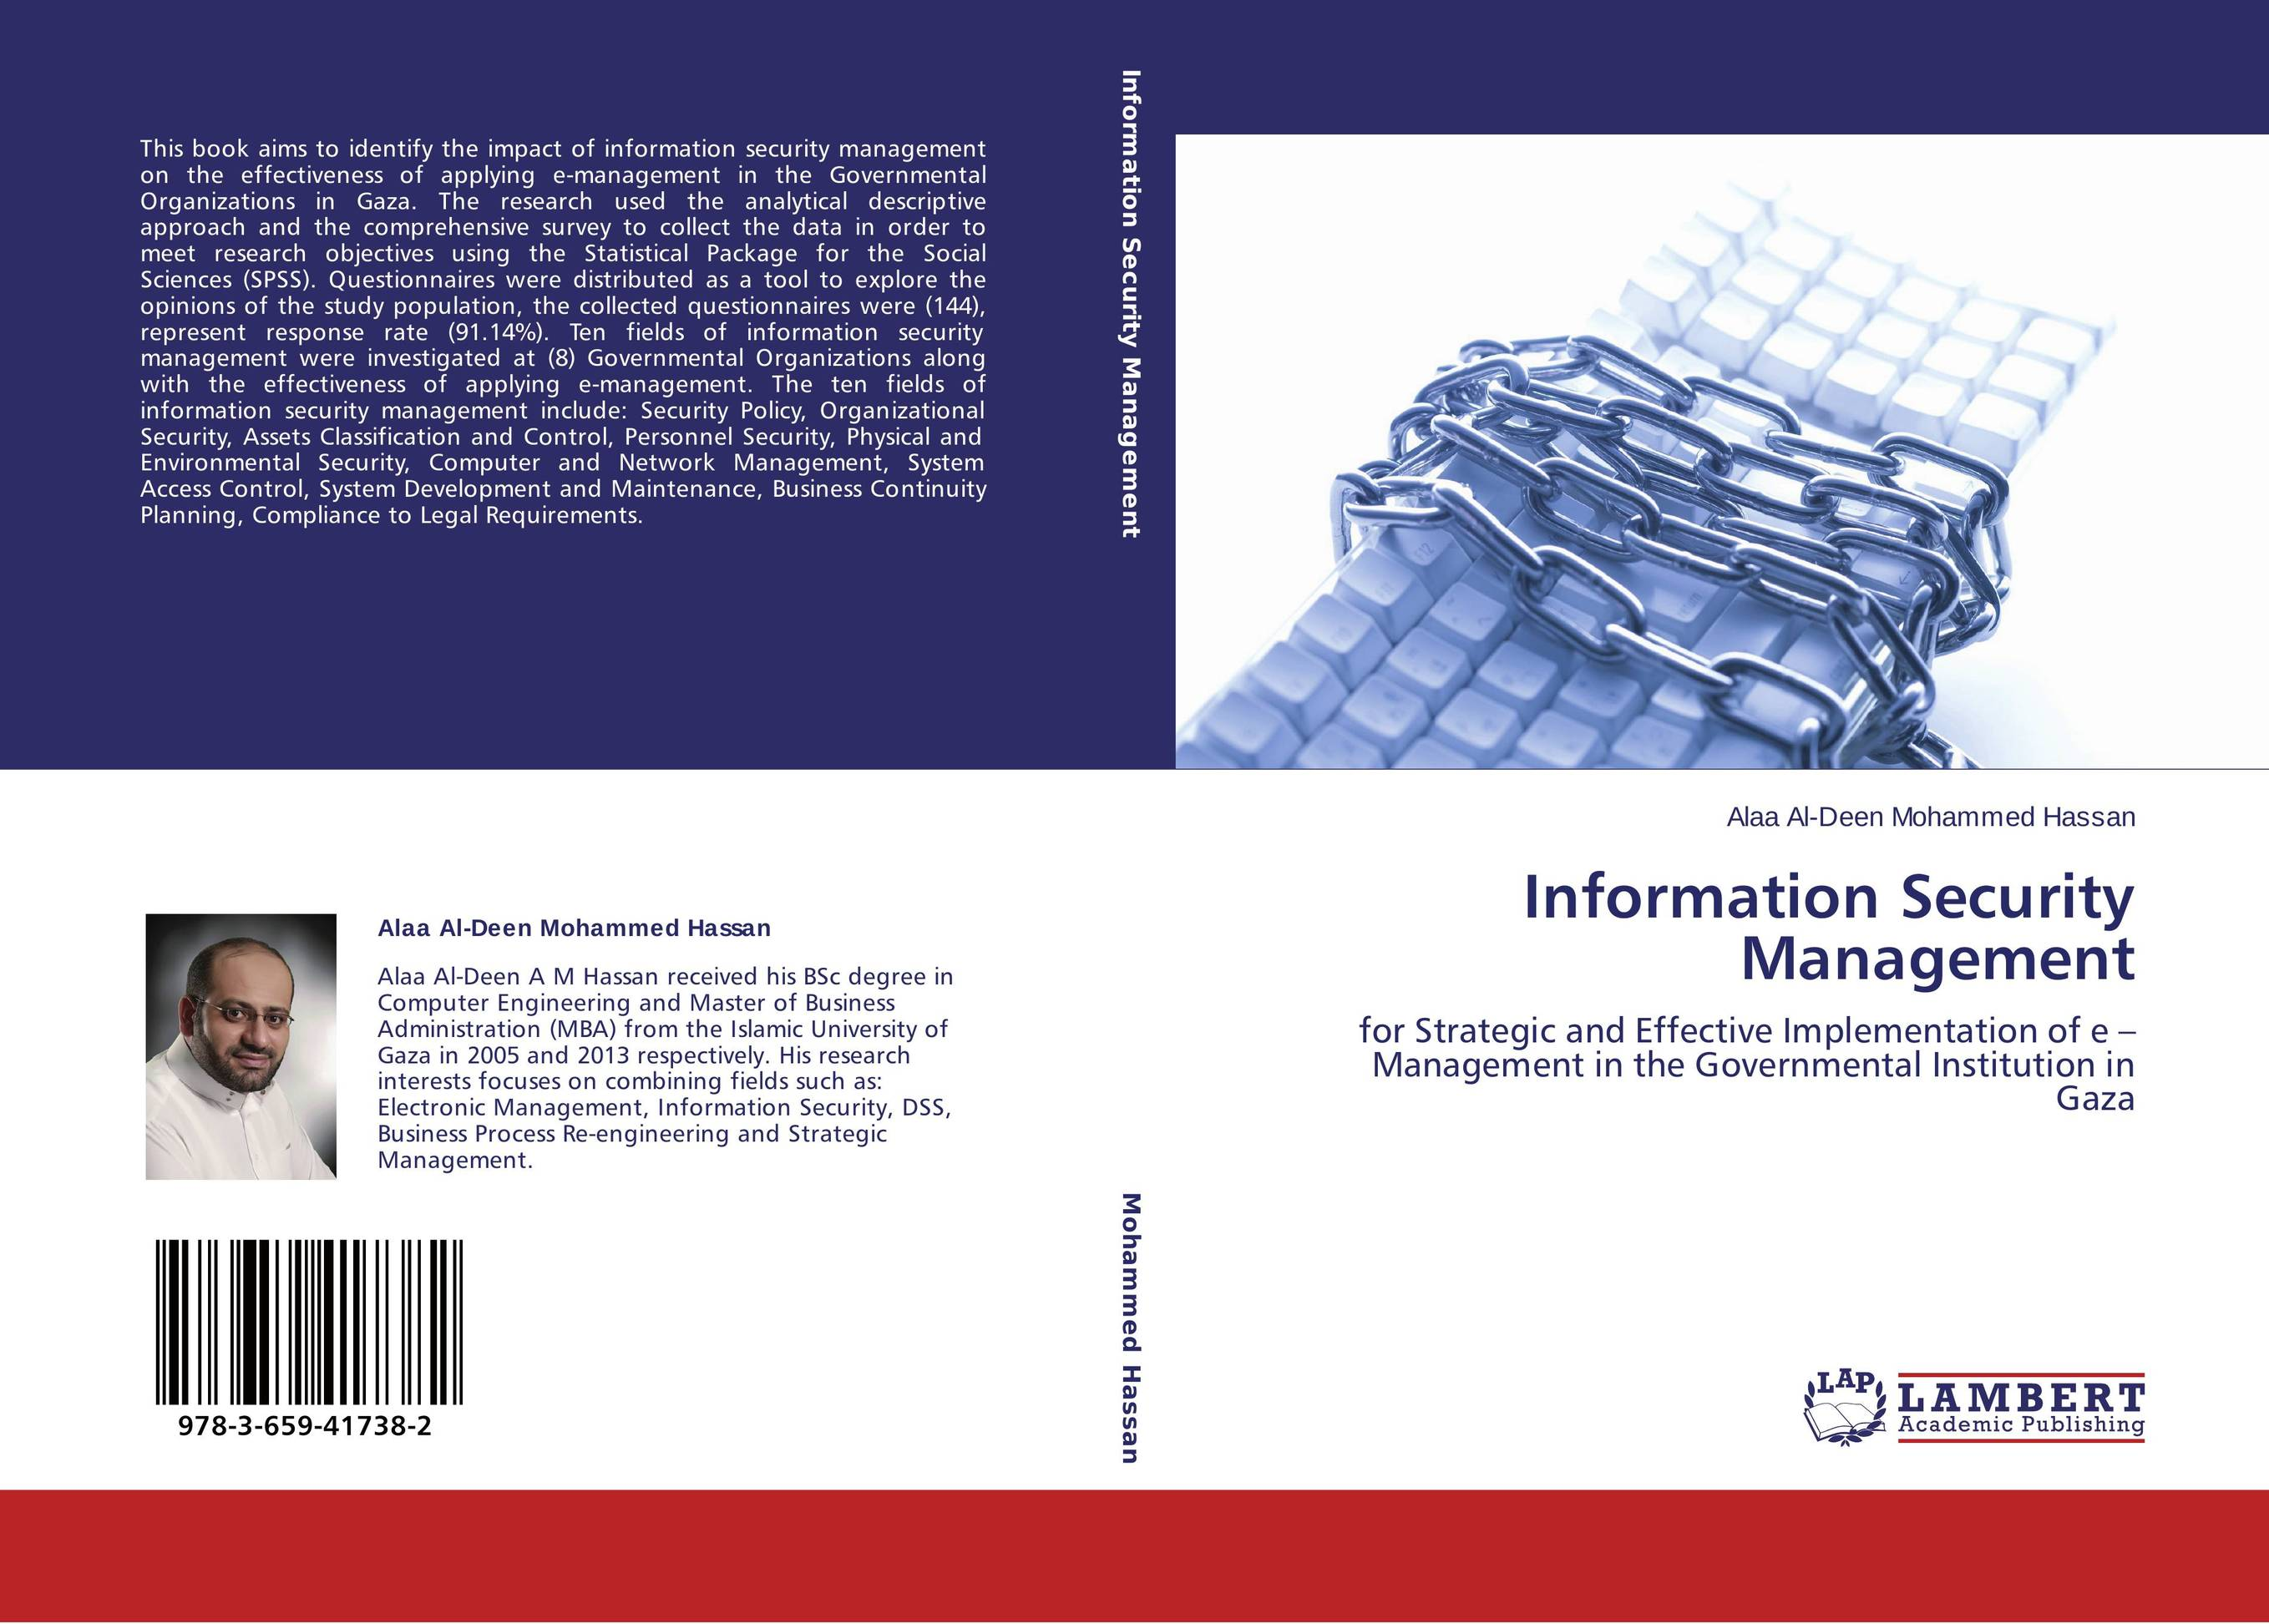 an approach to information security management The information security program is the whole complex collection of activities that support information protection an information security program involves technology, formal management processes, and the informal culture of an organization.